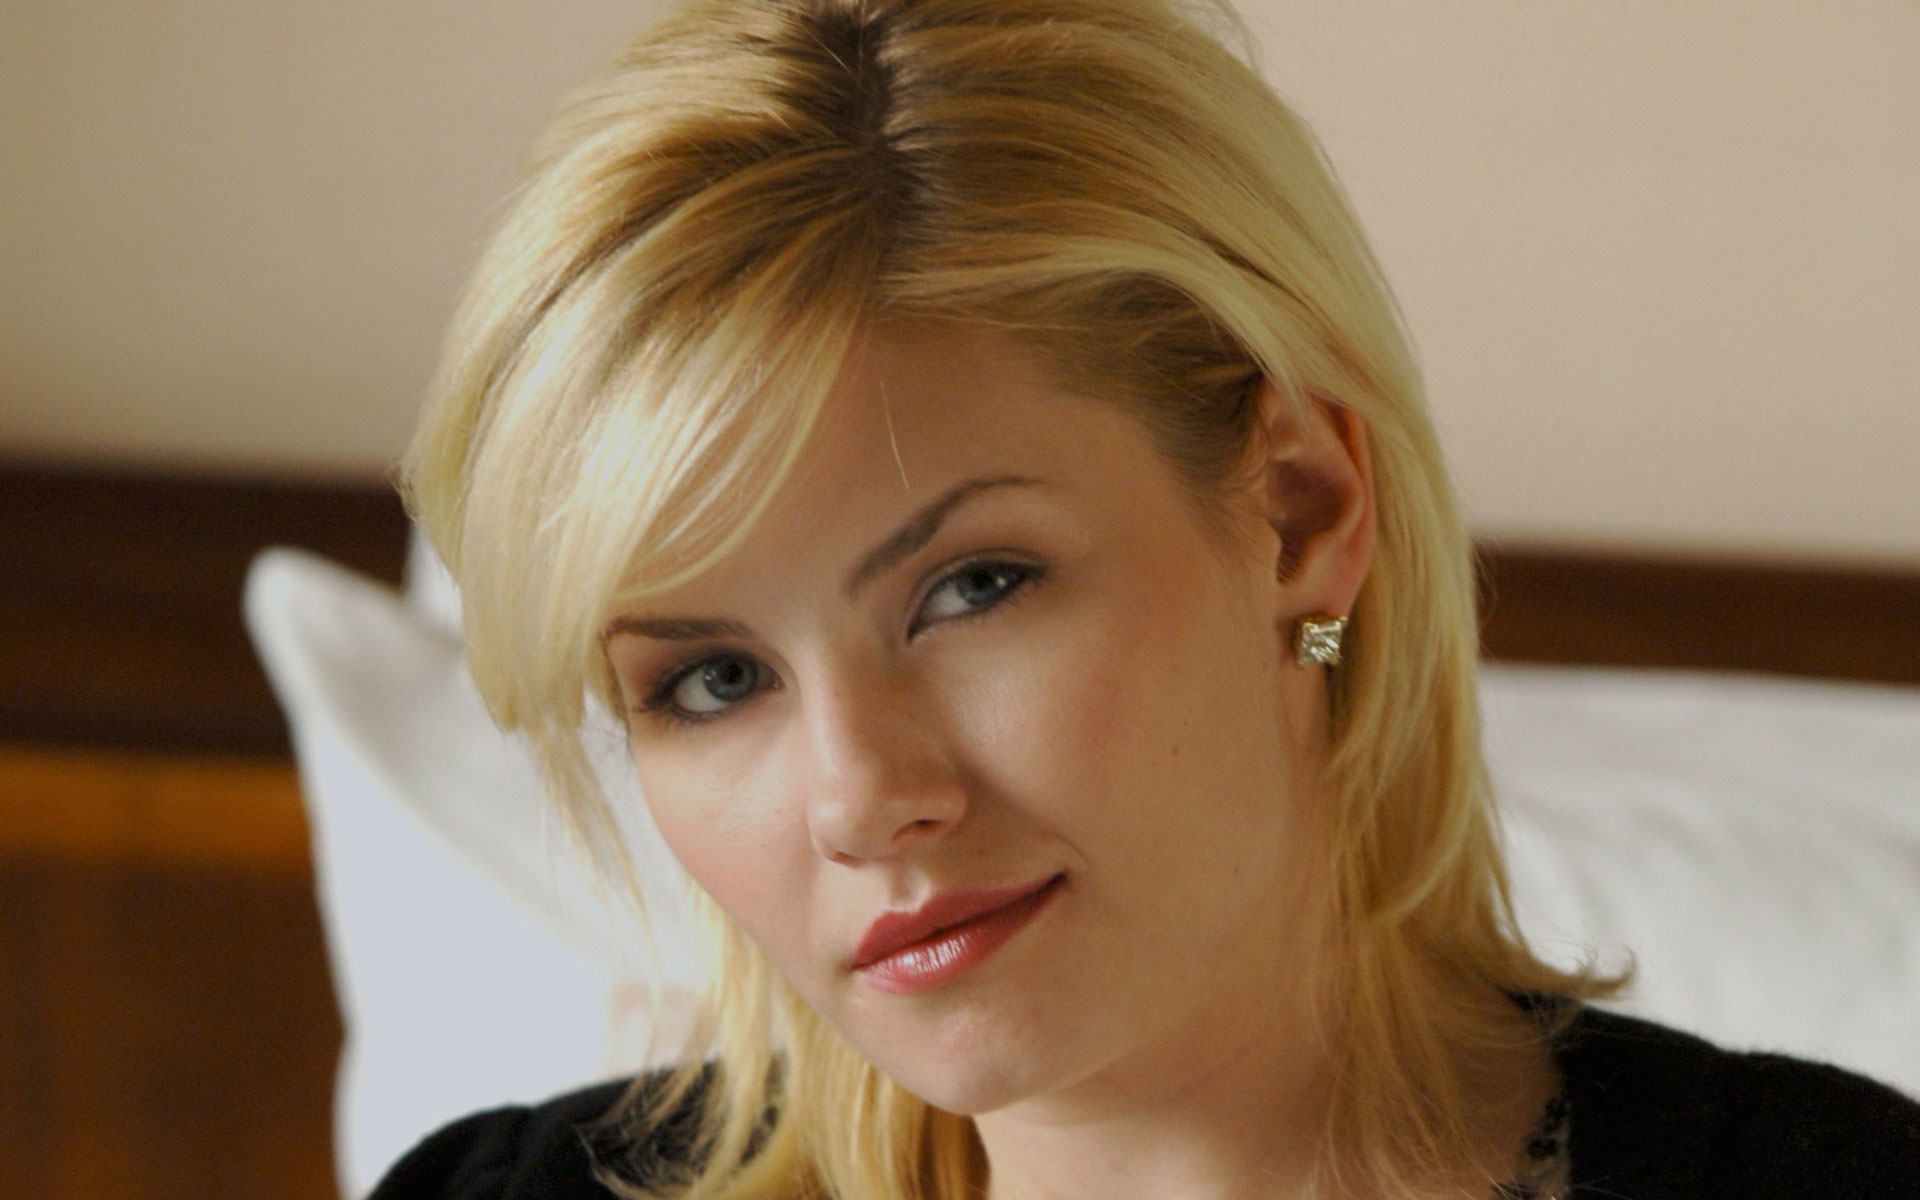 Elisha Cuthbert Download Lovely Wallpapers For Mobile